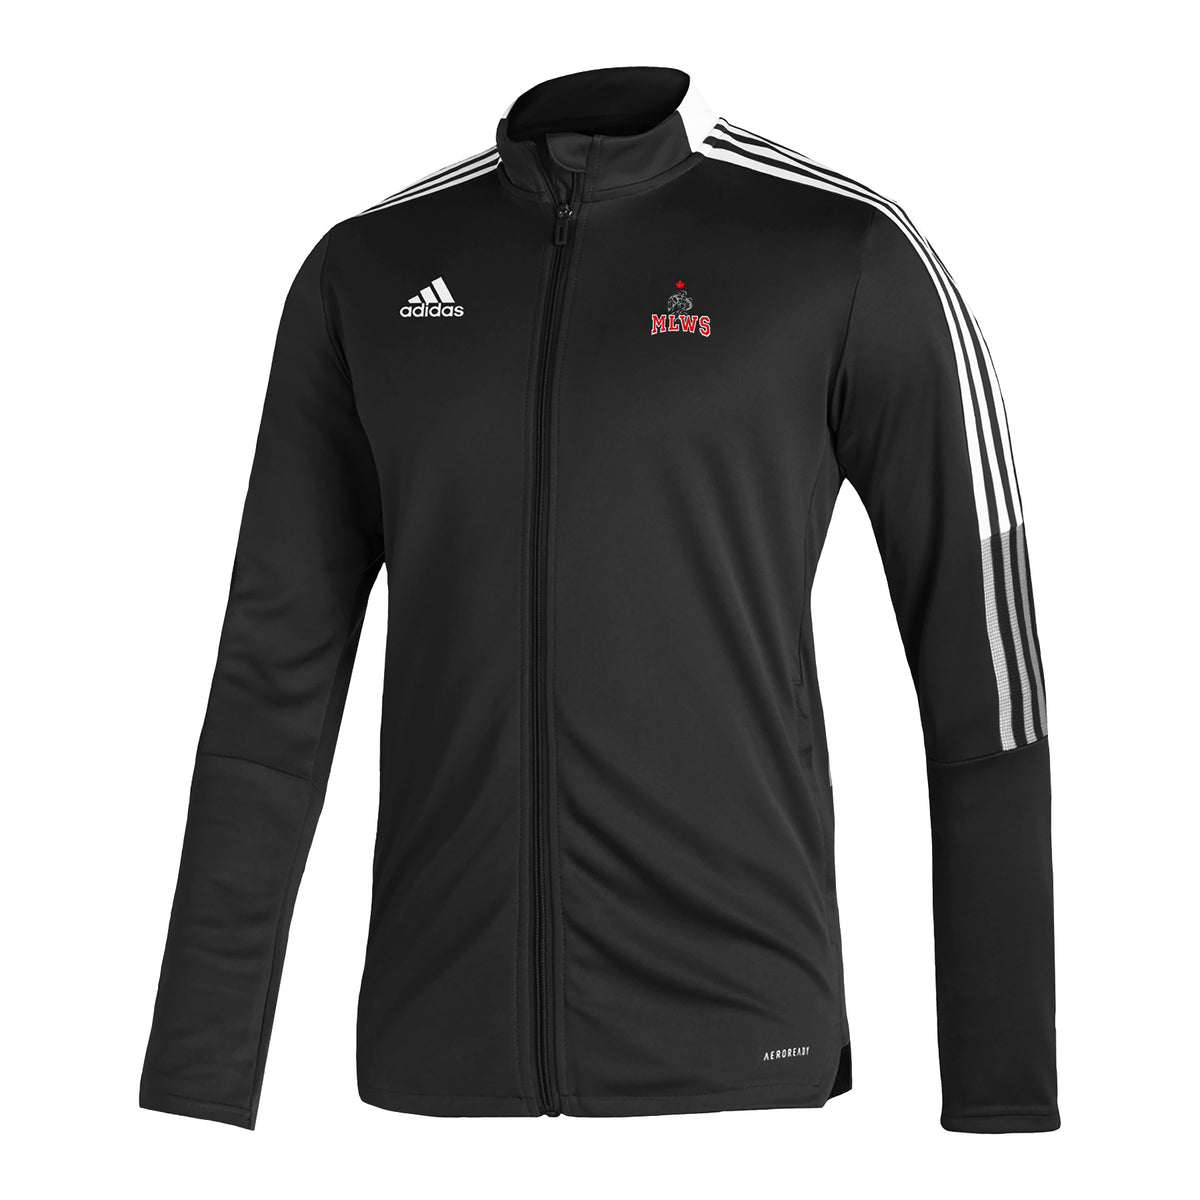 MAPLE LEAF WORLD TRACK JACKET, TIRO 21, YOUTH